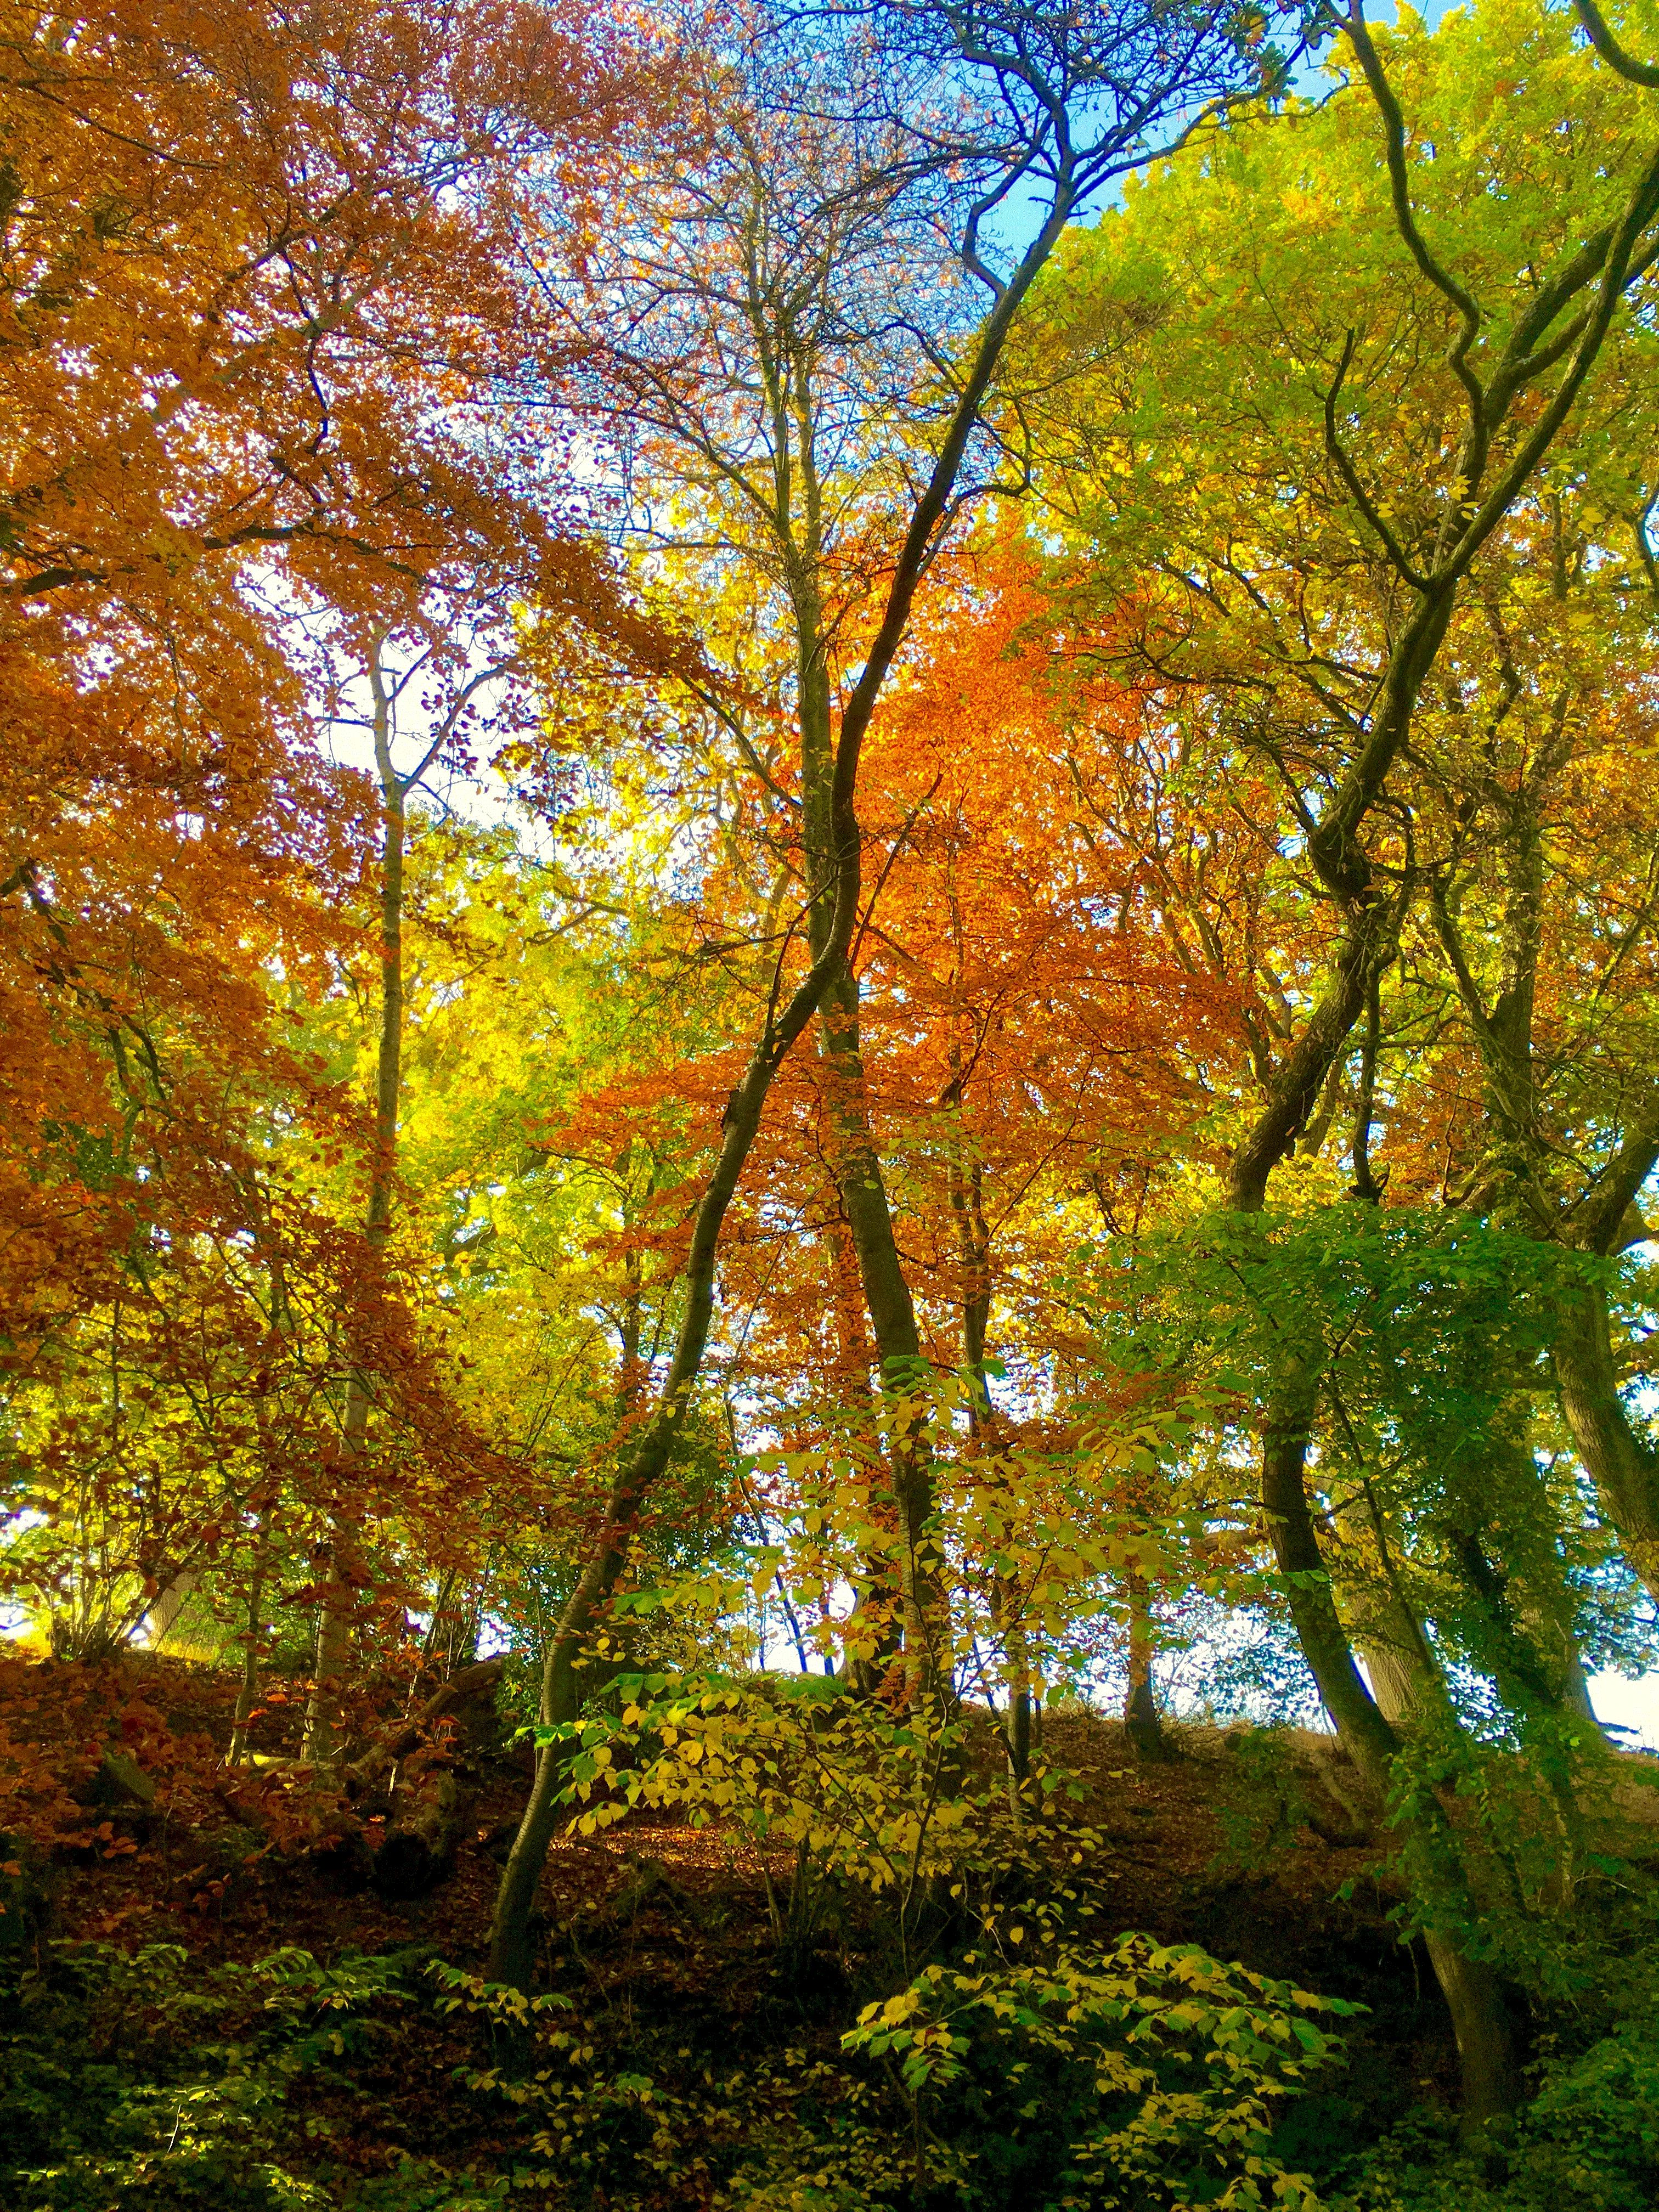 Orange, yellow and green leaves on autumn trees